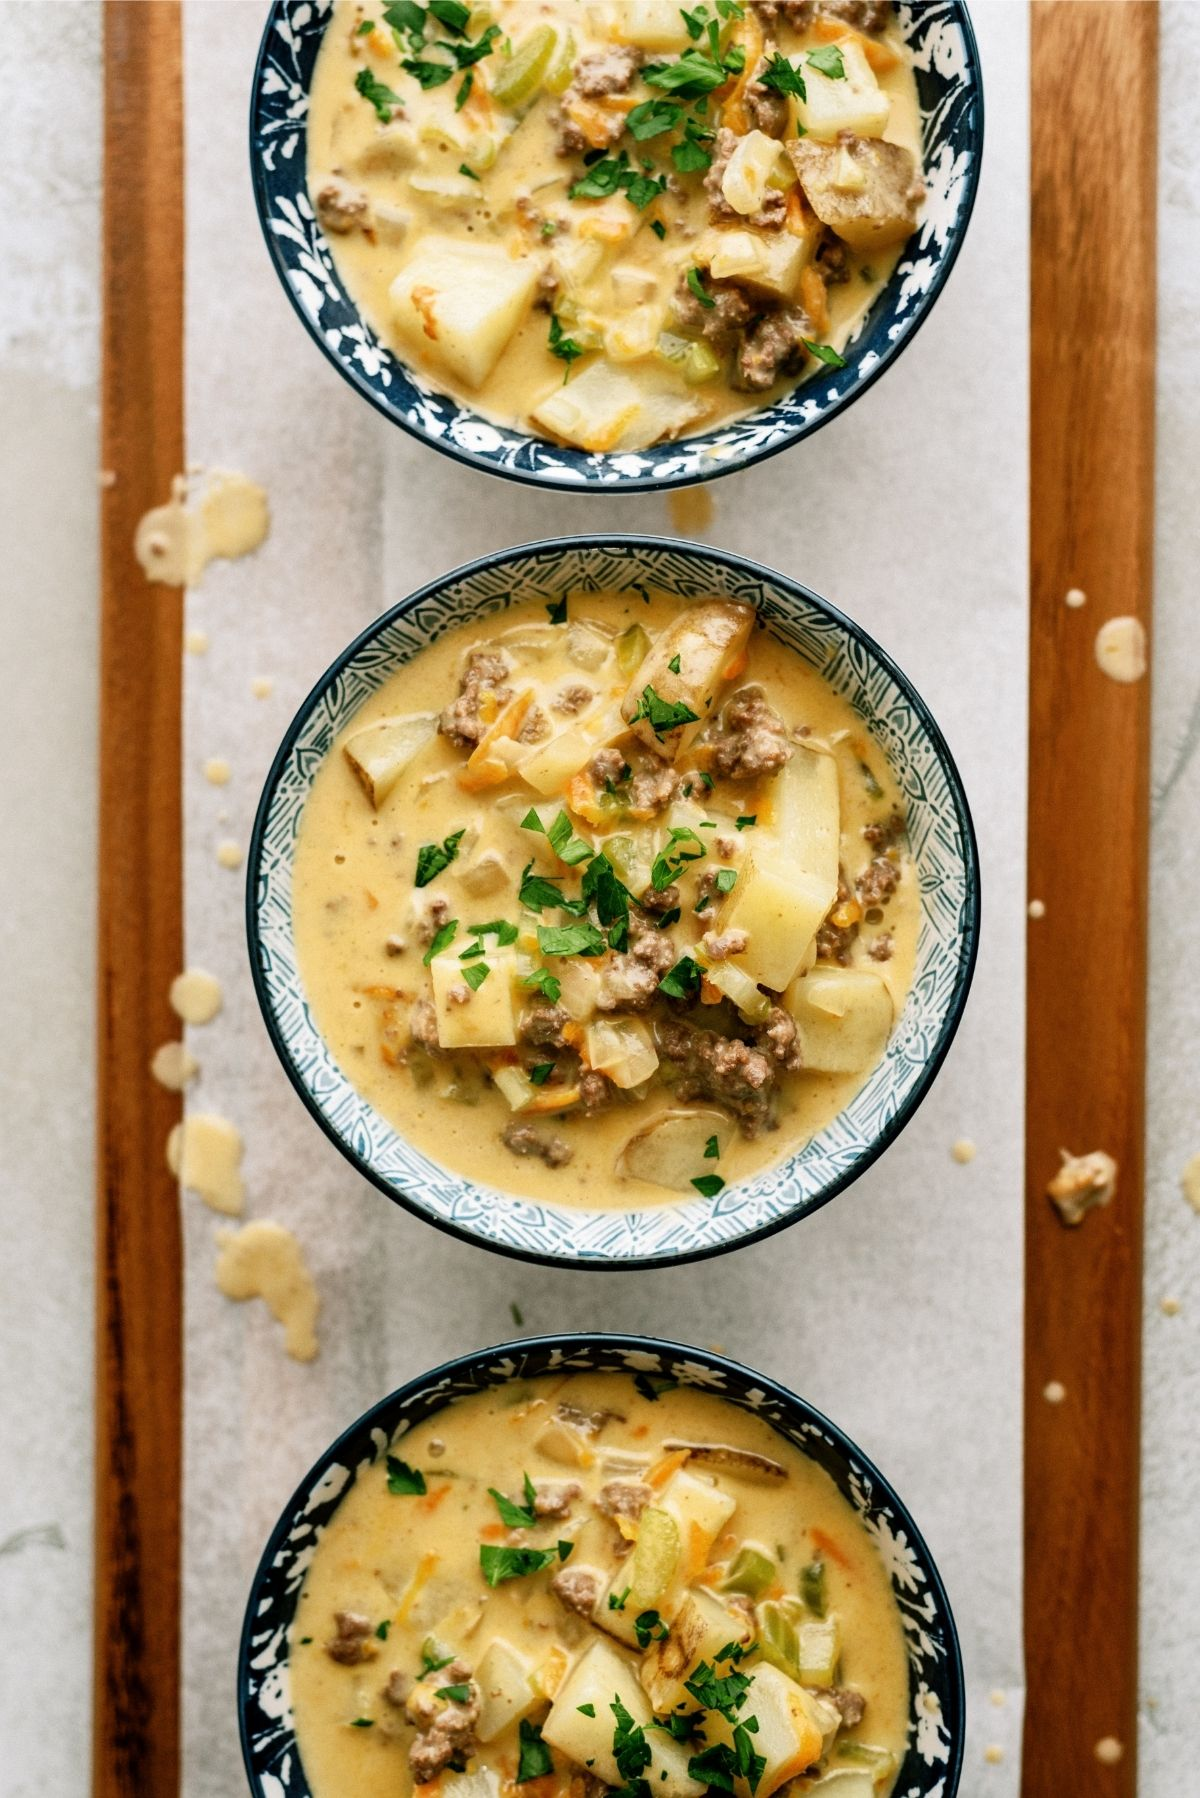 3 Bowls full of The Best Cheeseburger Soup Recipe (Cheesy Ground Beef Soup) on a wooden board